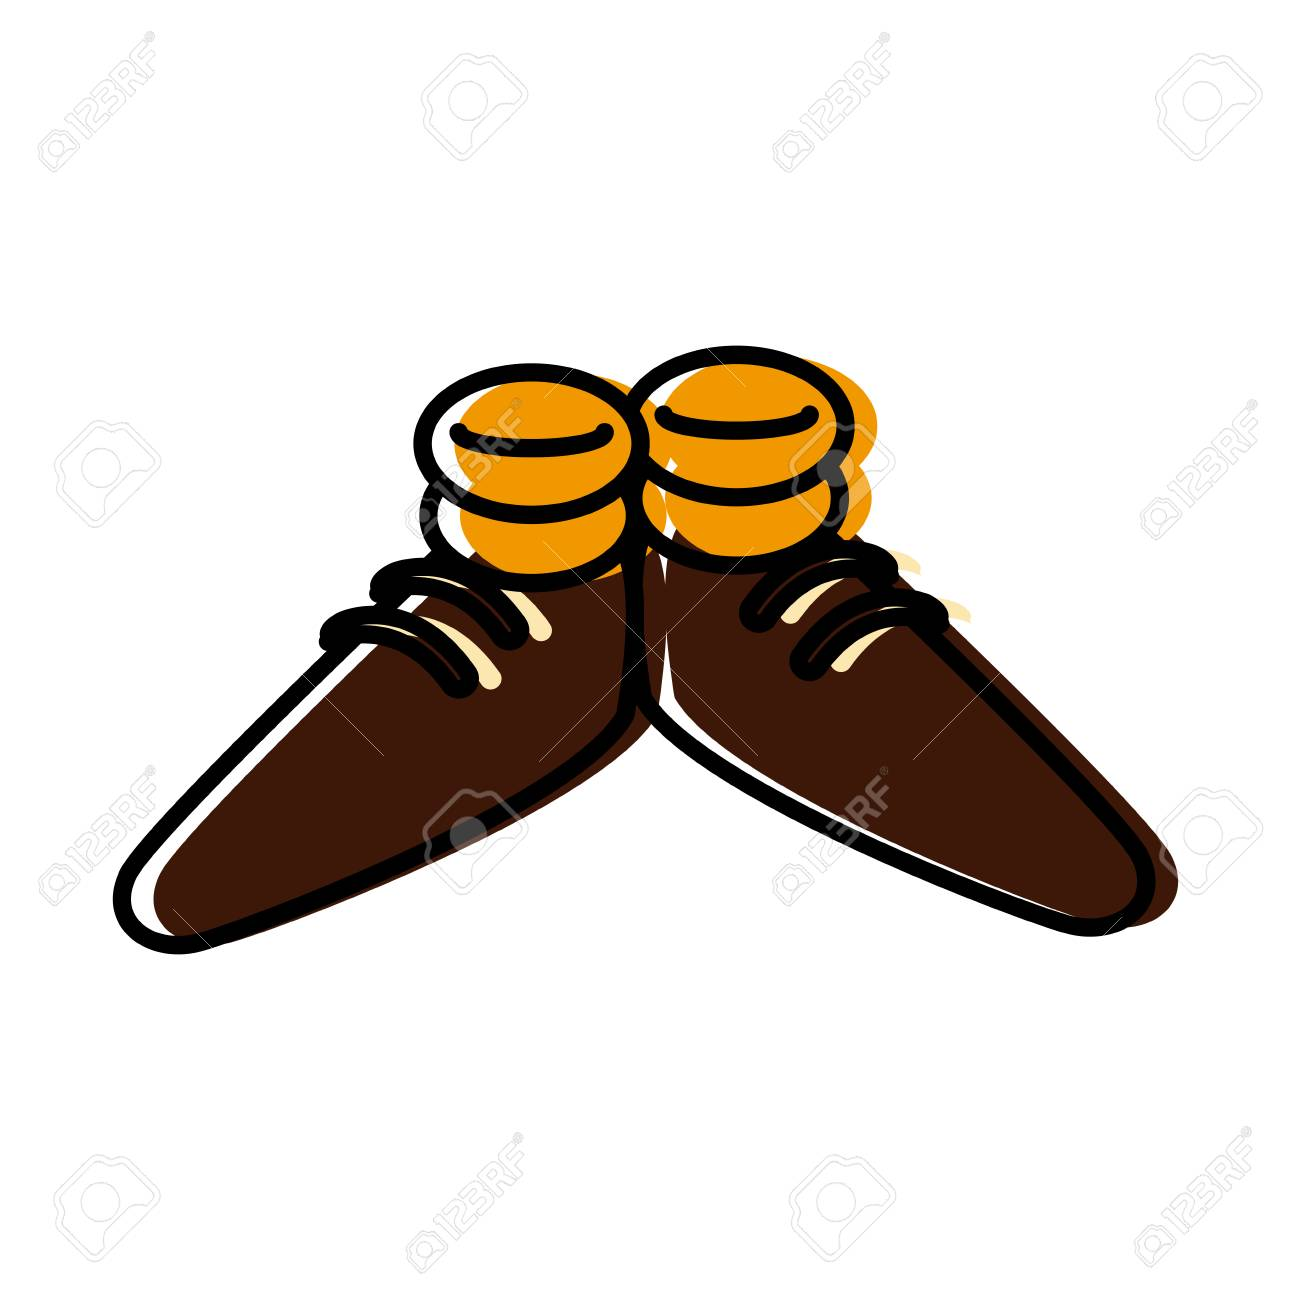 Funny Shoes Cartoon Icon Vector Illustration Graphic Design Royalty